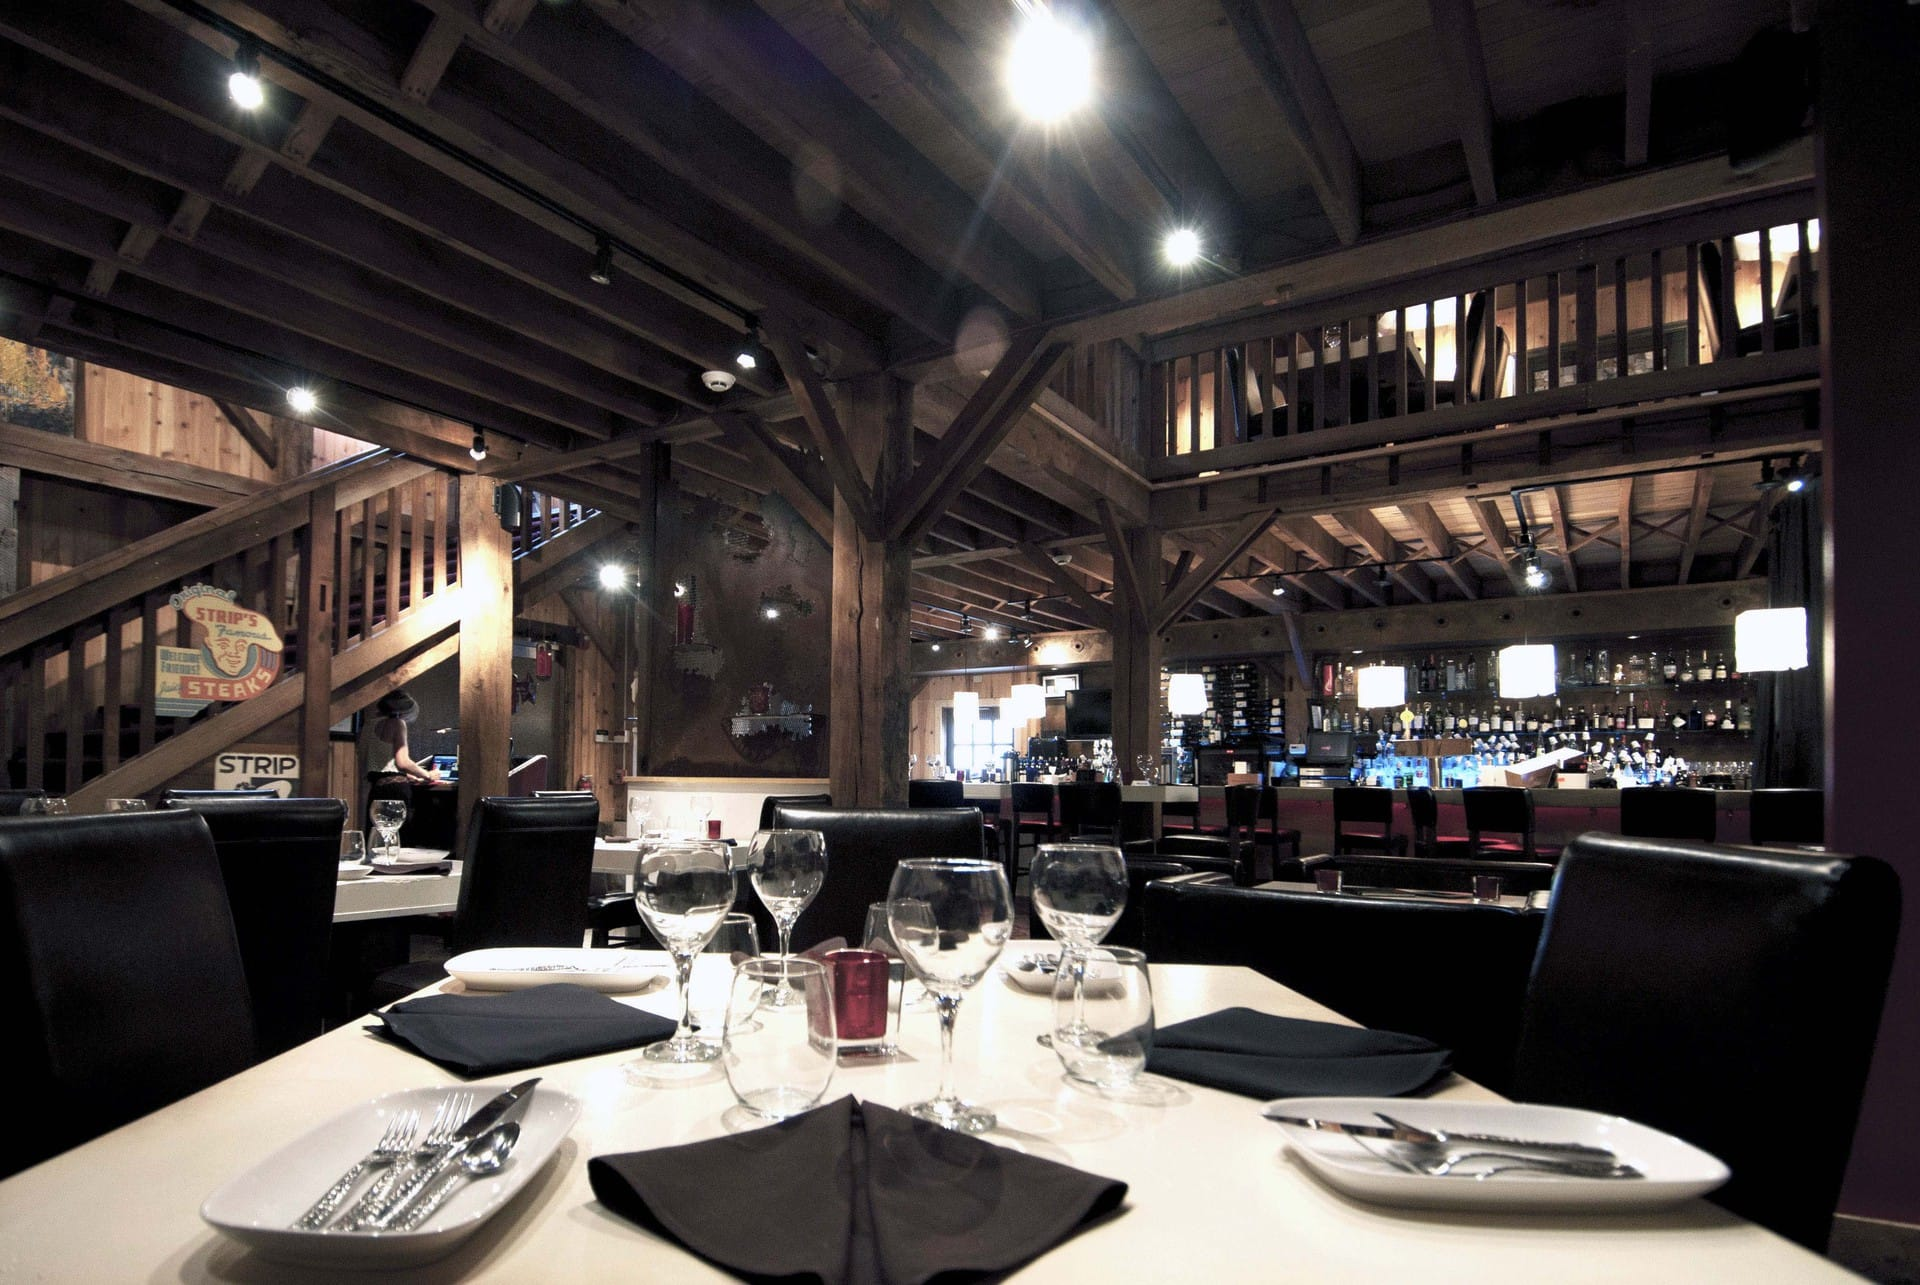 The Strip Steakhouse in Olde Avon Village « Arkinetics